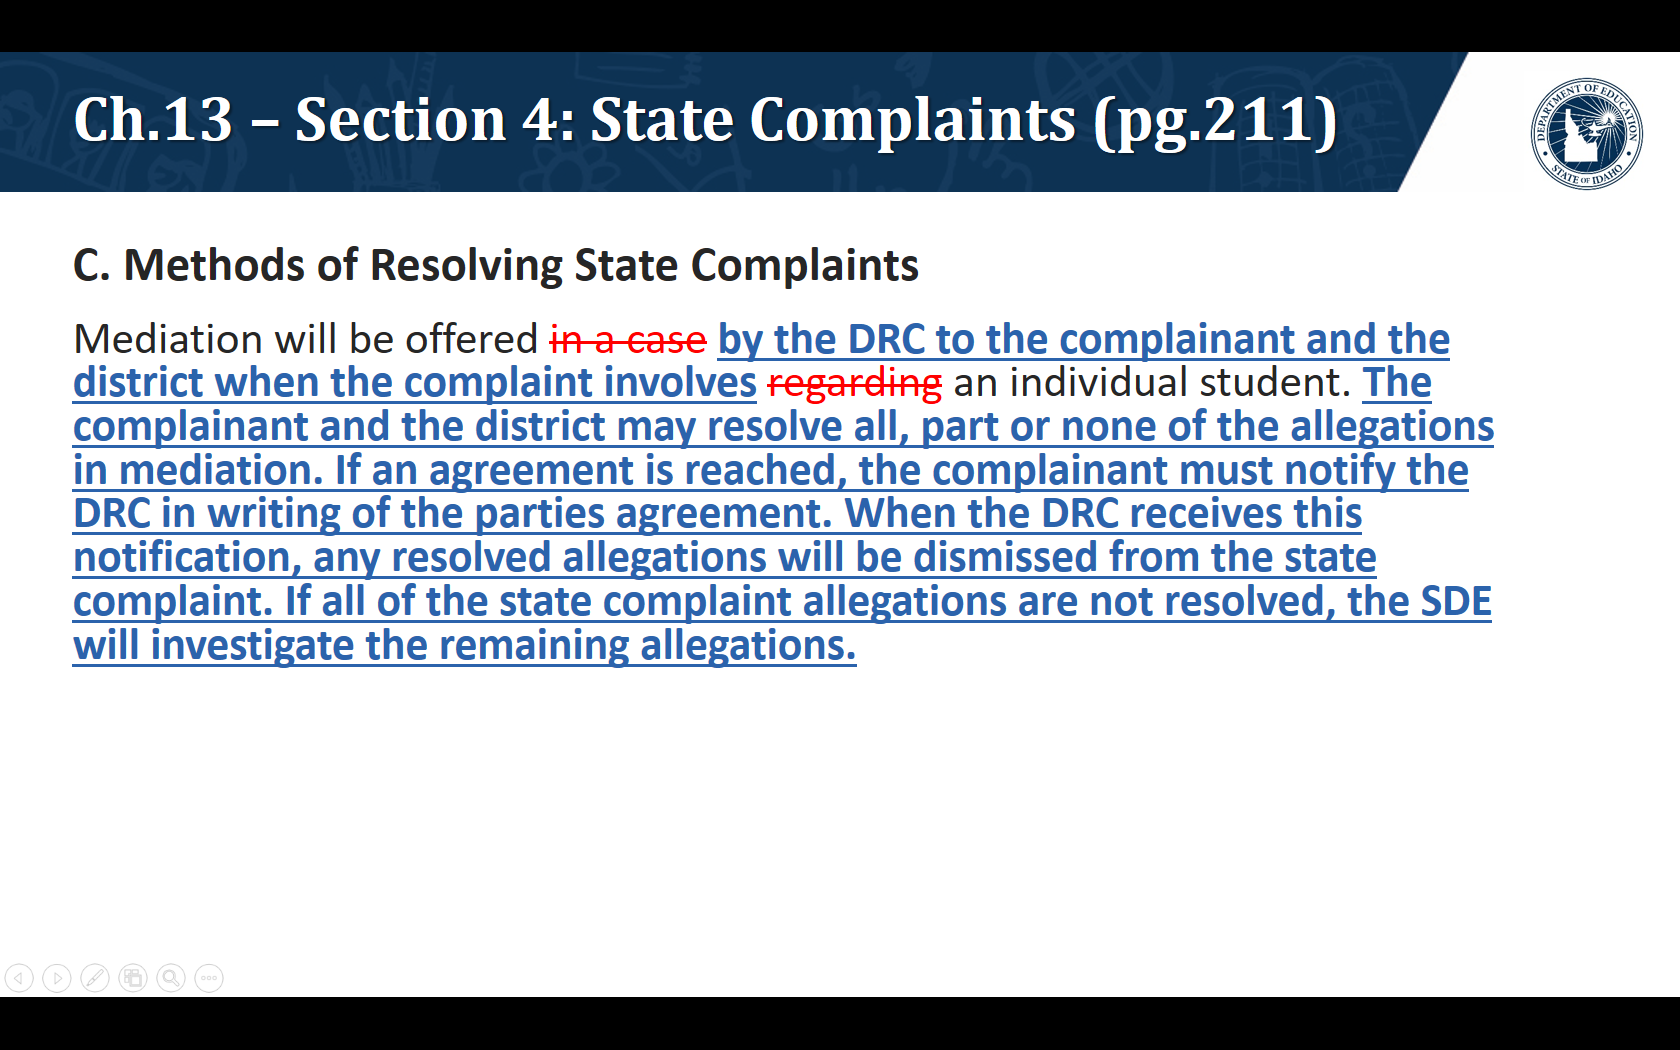 C. Methods of Resolving State Complaints. Mediation will be offered by the DRC to the complainant and the district when the complaint involves an individual student. The complainant and the district may resolve all, part or none of the allegations in mediation. If an agreement is reached, the complainant must notify the DRC in writing of the parties agreement. When the DRC receives this notification, any resolved allegations will be dismissed from the state complaint. If all of the state complaint allegations are not resolved, the SDE will investigate the remaining allegations.